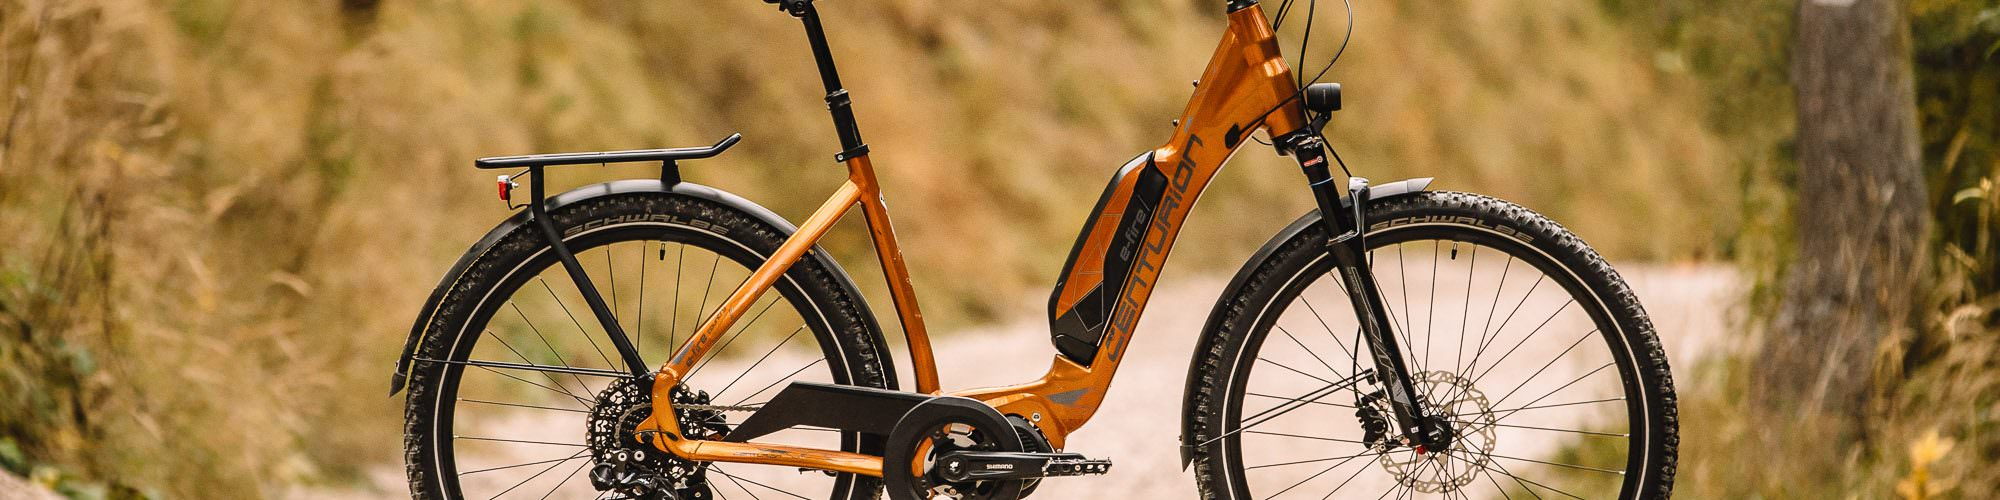 21d73c37de827d Review CENTURION E-Fire Country – the coolest step-through ebike in the  world